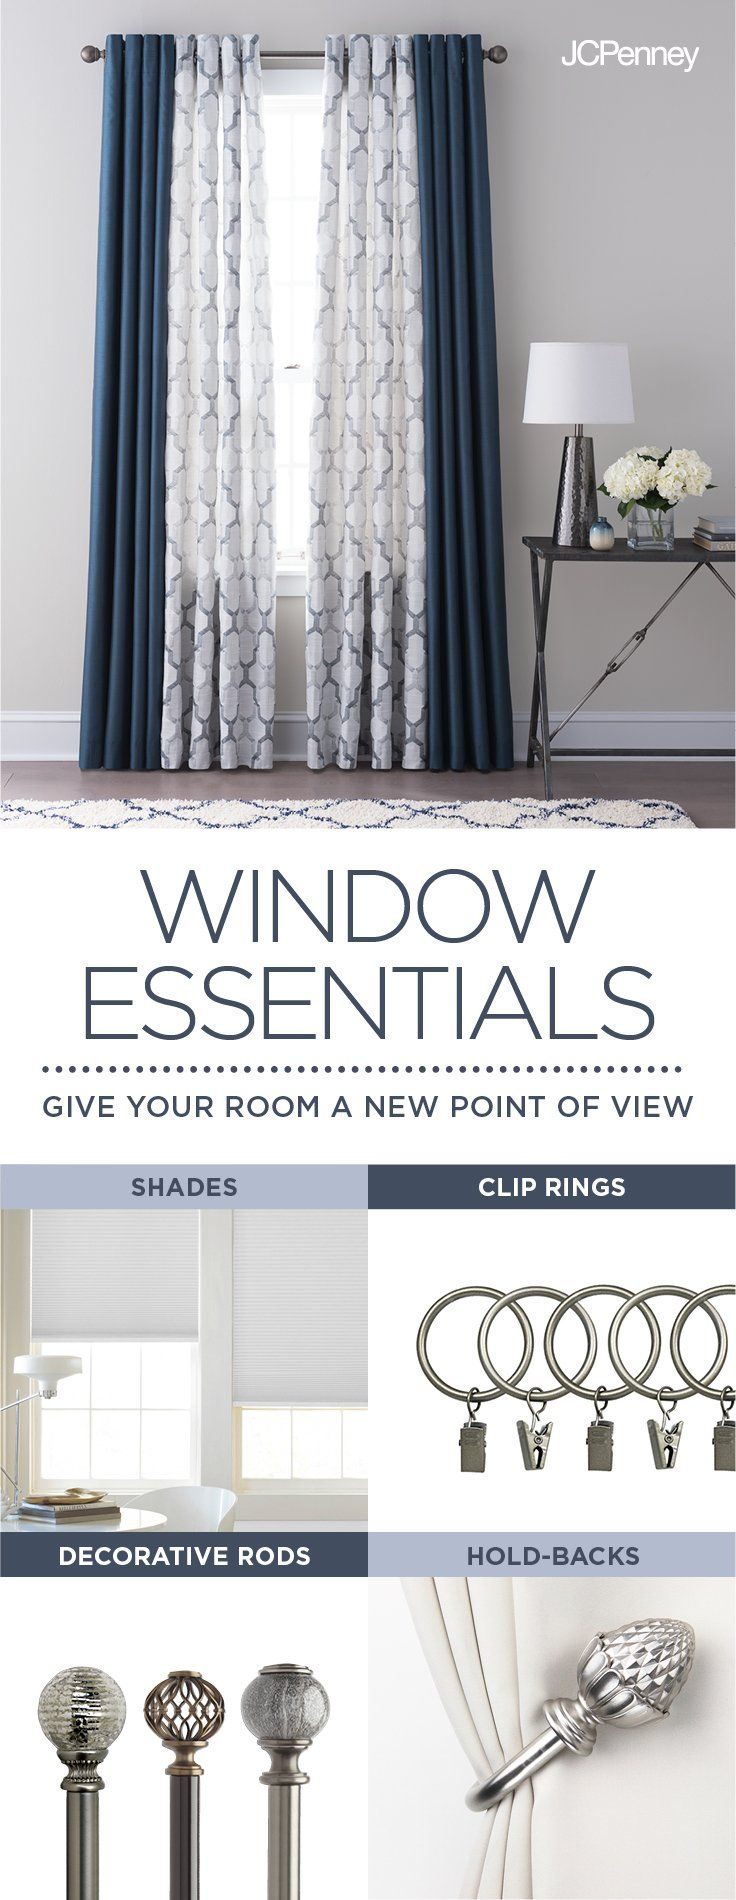 12 best Windows images on Pinterest | Window coverings, Blinds and ...